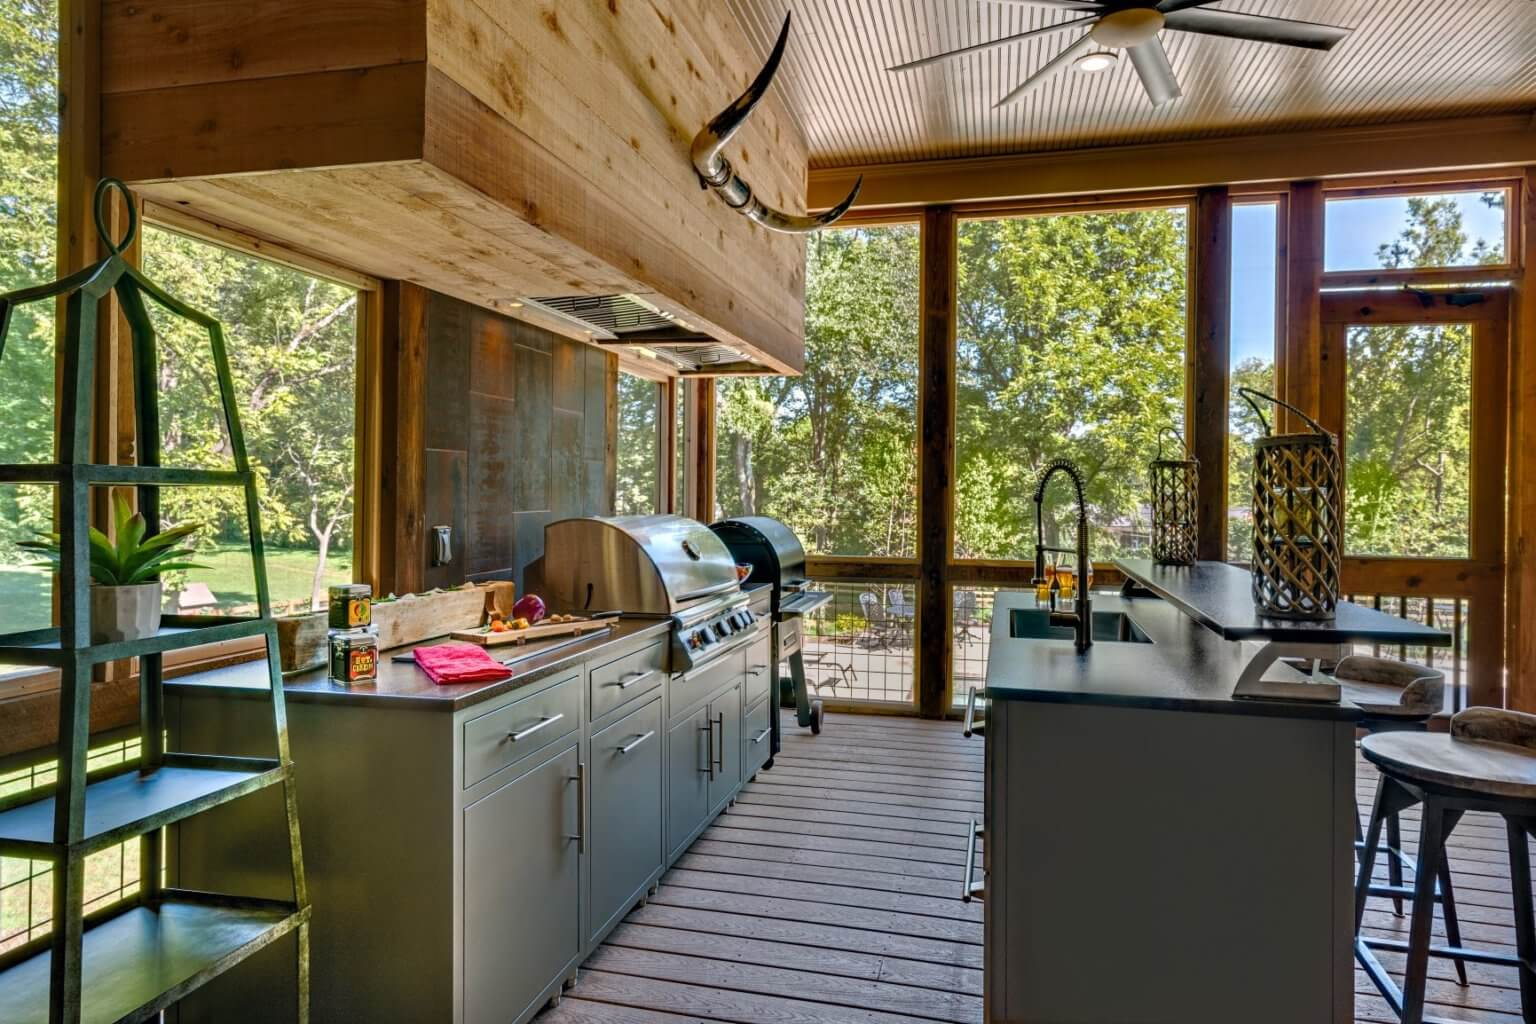 Cappuccino powder coated aluminum kitchen cabinet under a screened patio